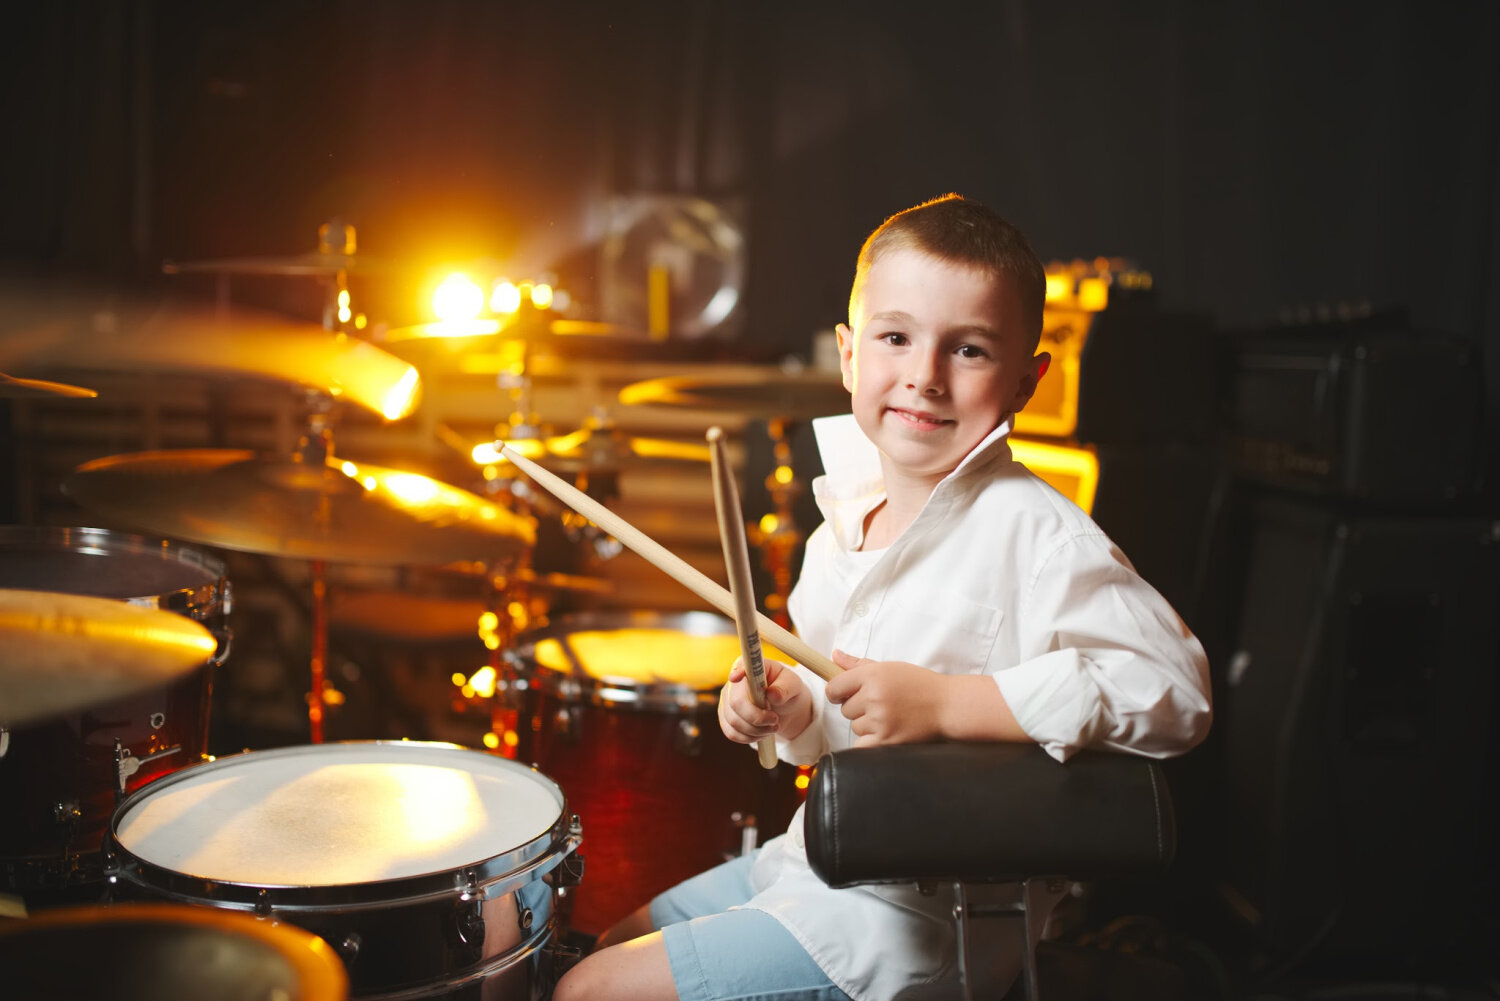 drums-boy-mendota-heights-1500px.jpg